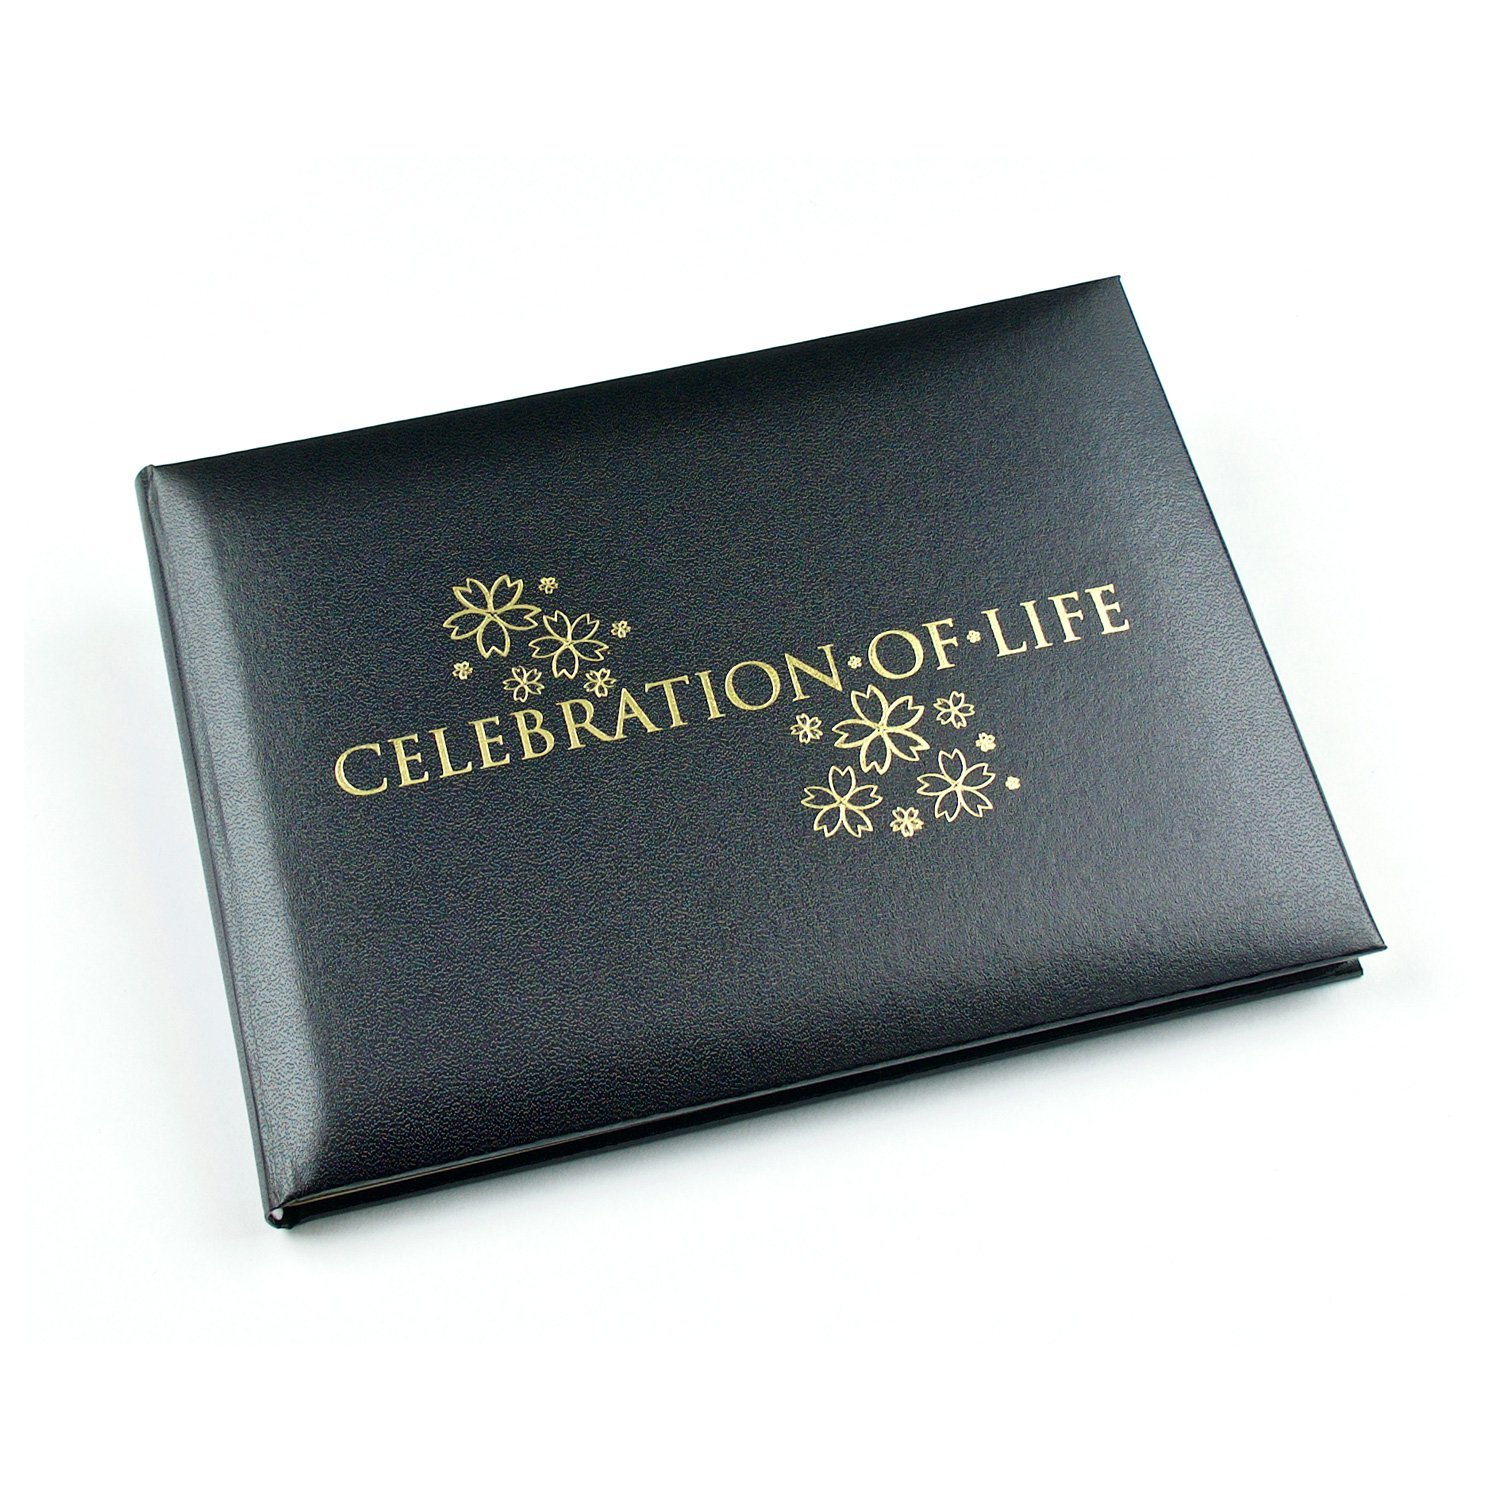 Celebration Of Life - Condolence Book - Funeral Guest Book - Black (Open Format Inner Pages ) - 8.9 x 6.7 x 1.2 inches